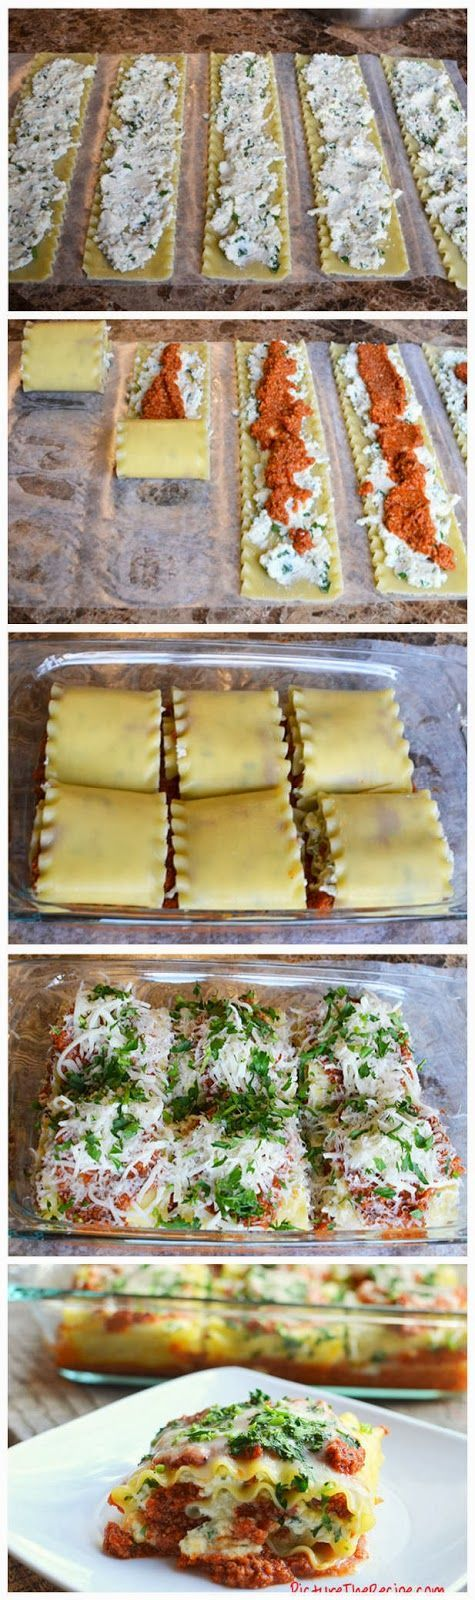 Here's a way to not only simplify the process of making lasagna, but also serving it. With these lasagna rolls, you won't have the hassle of slicing the lasagna only to have the layered stuffing fall out into a mess on the plate. Granted, it does still taste good…but if you want to make fancier individual servings if lasagna…Lasagna rolls are the way to go...